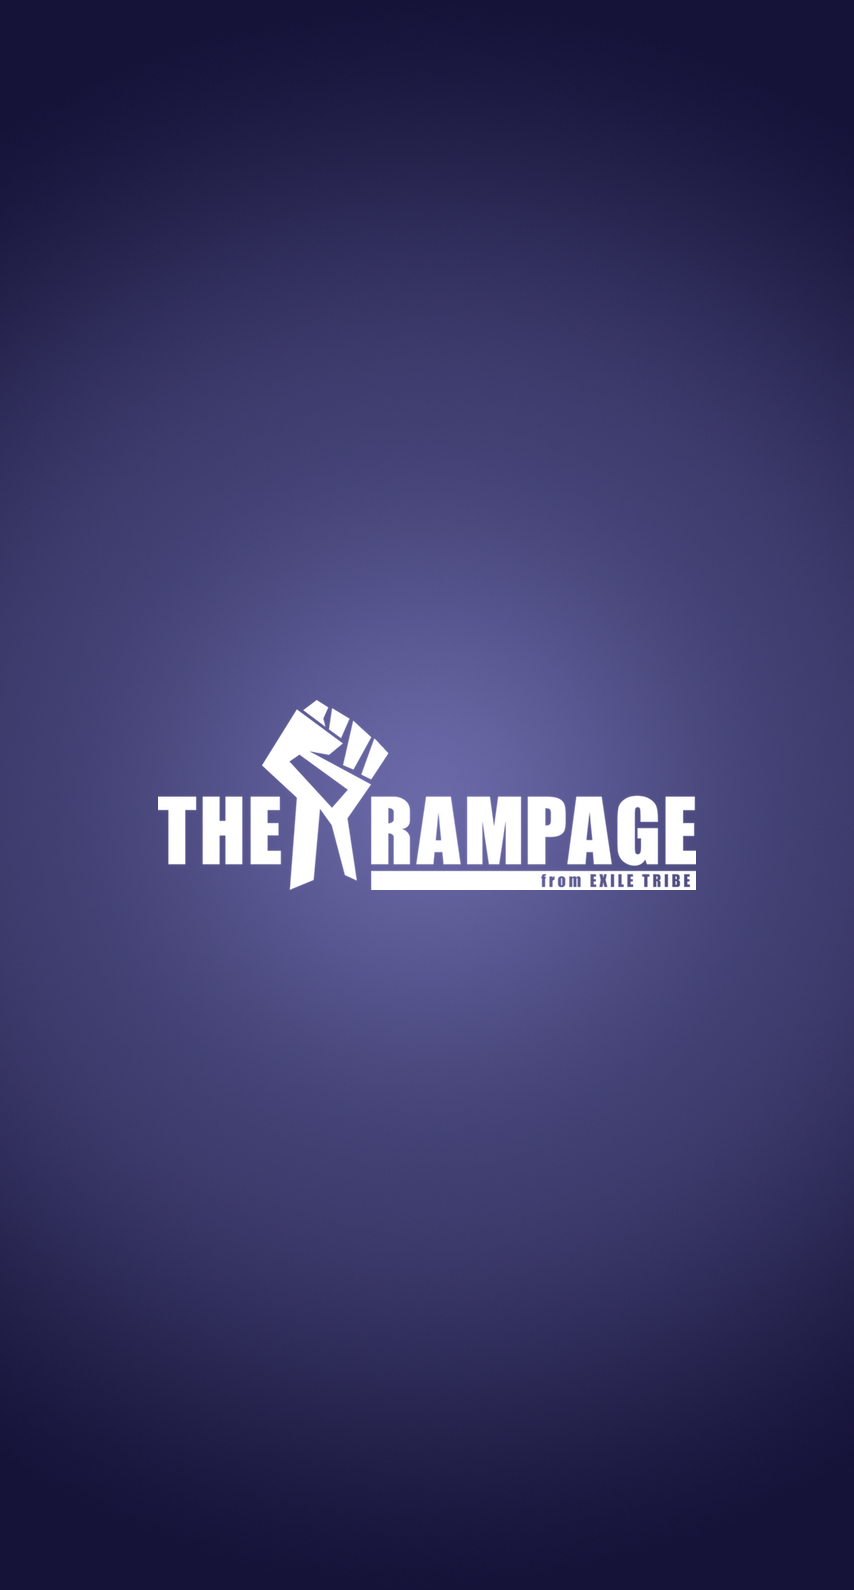 THE RAMPAGE from EXILE TRIBEロゴ